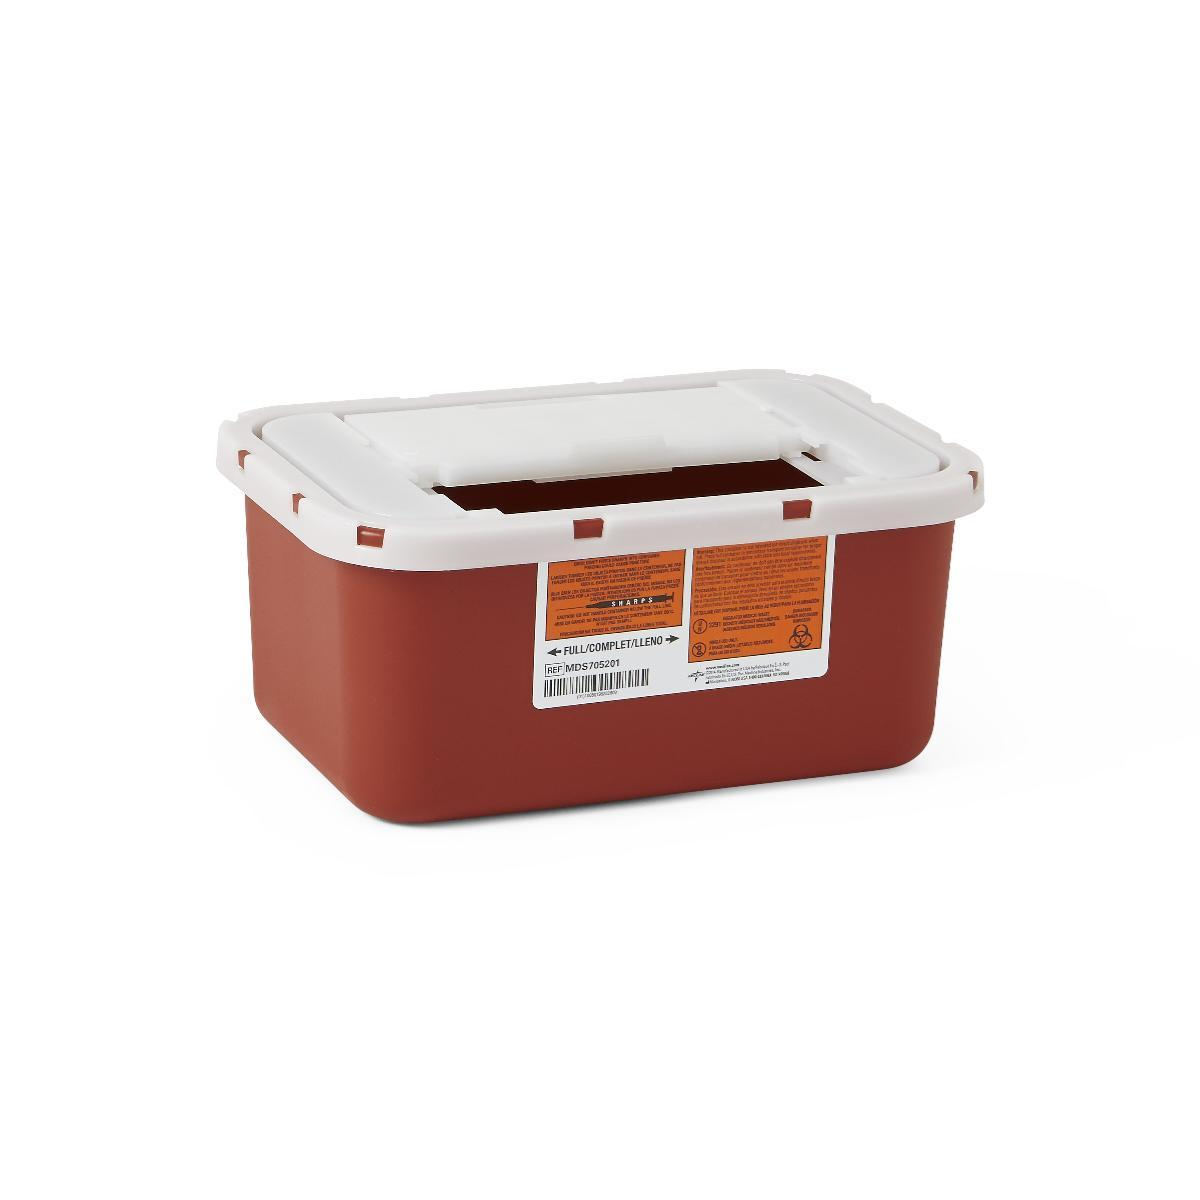 Nursing Supplies & Patient Care Sharps Containers - Mds705201h - Container Sharps 1 Ga. Red Wall/free MDS705201H